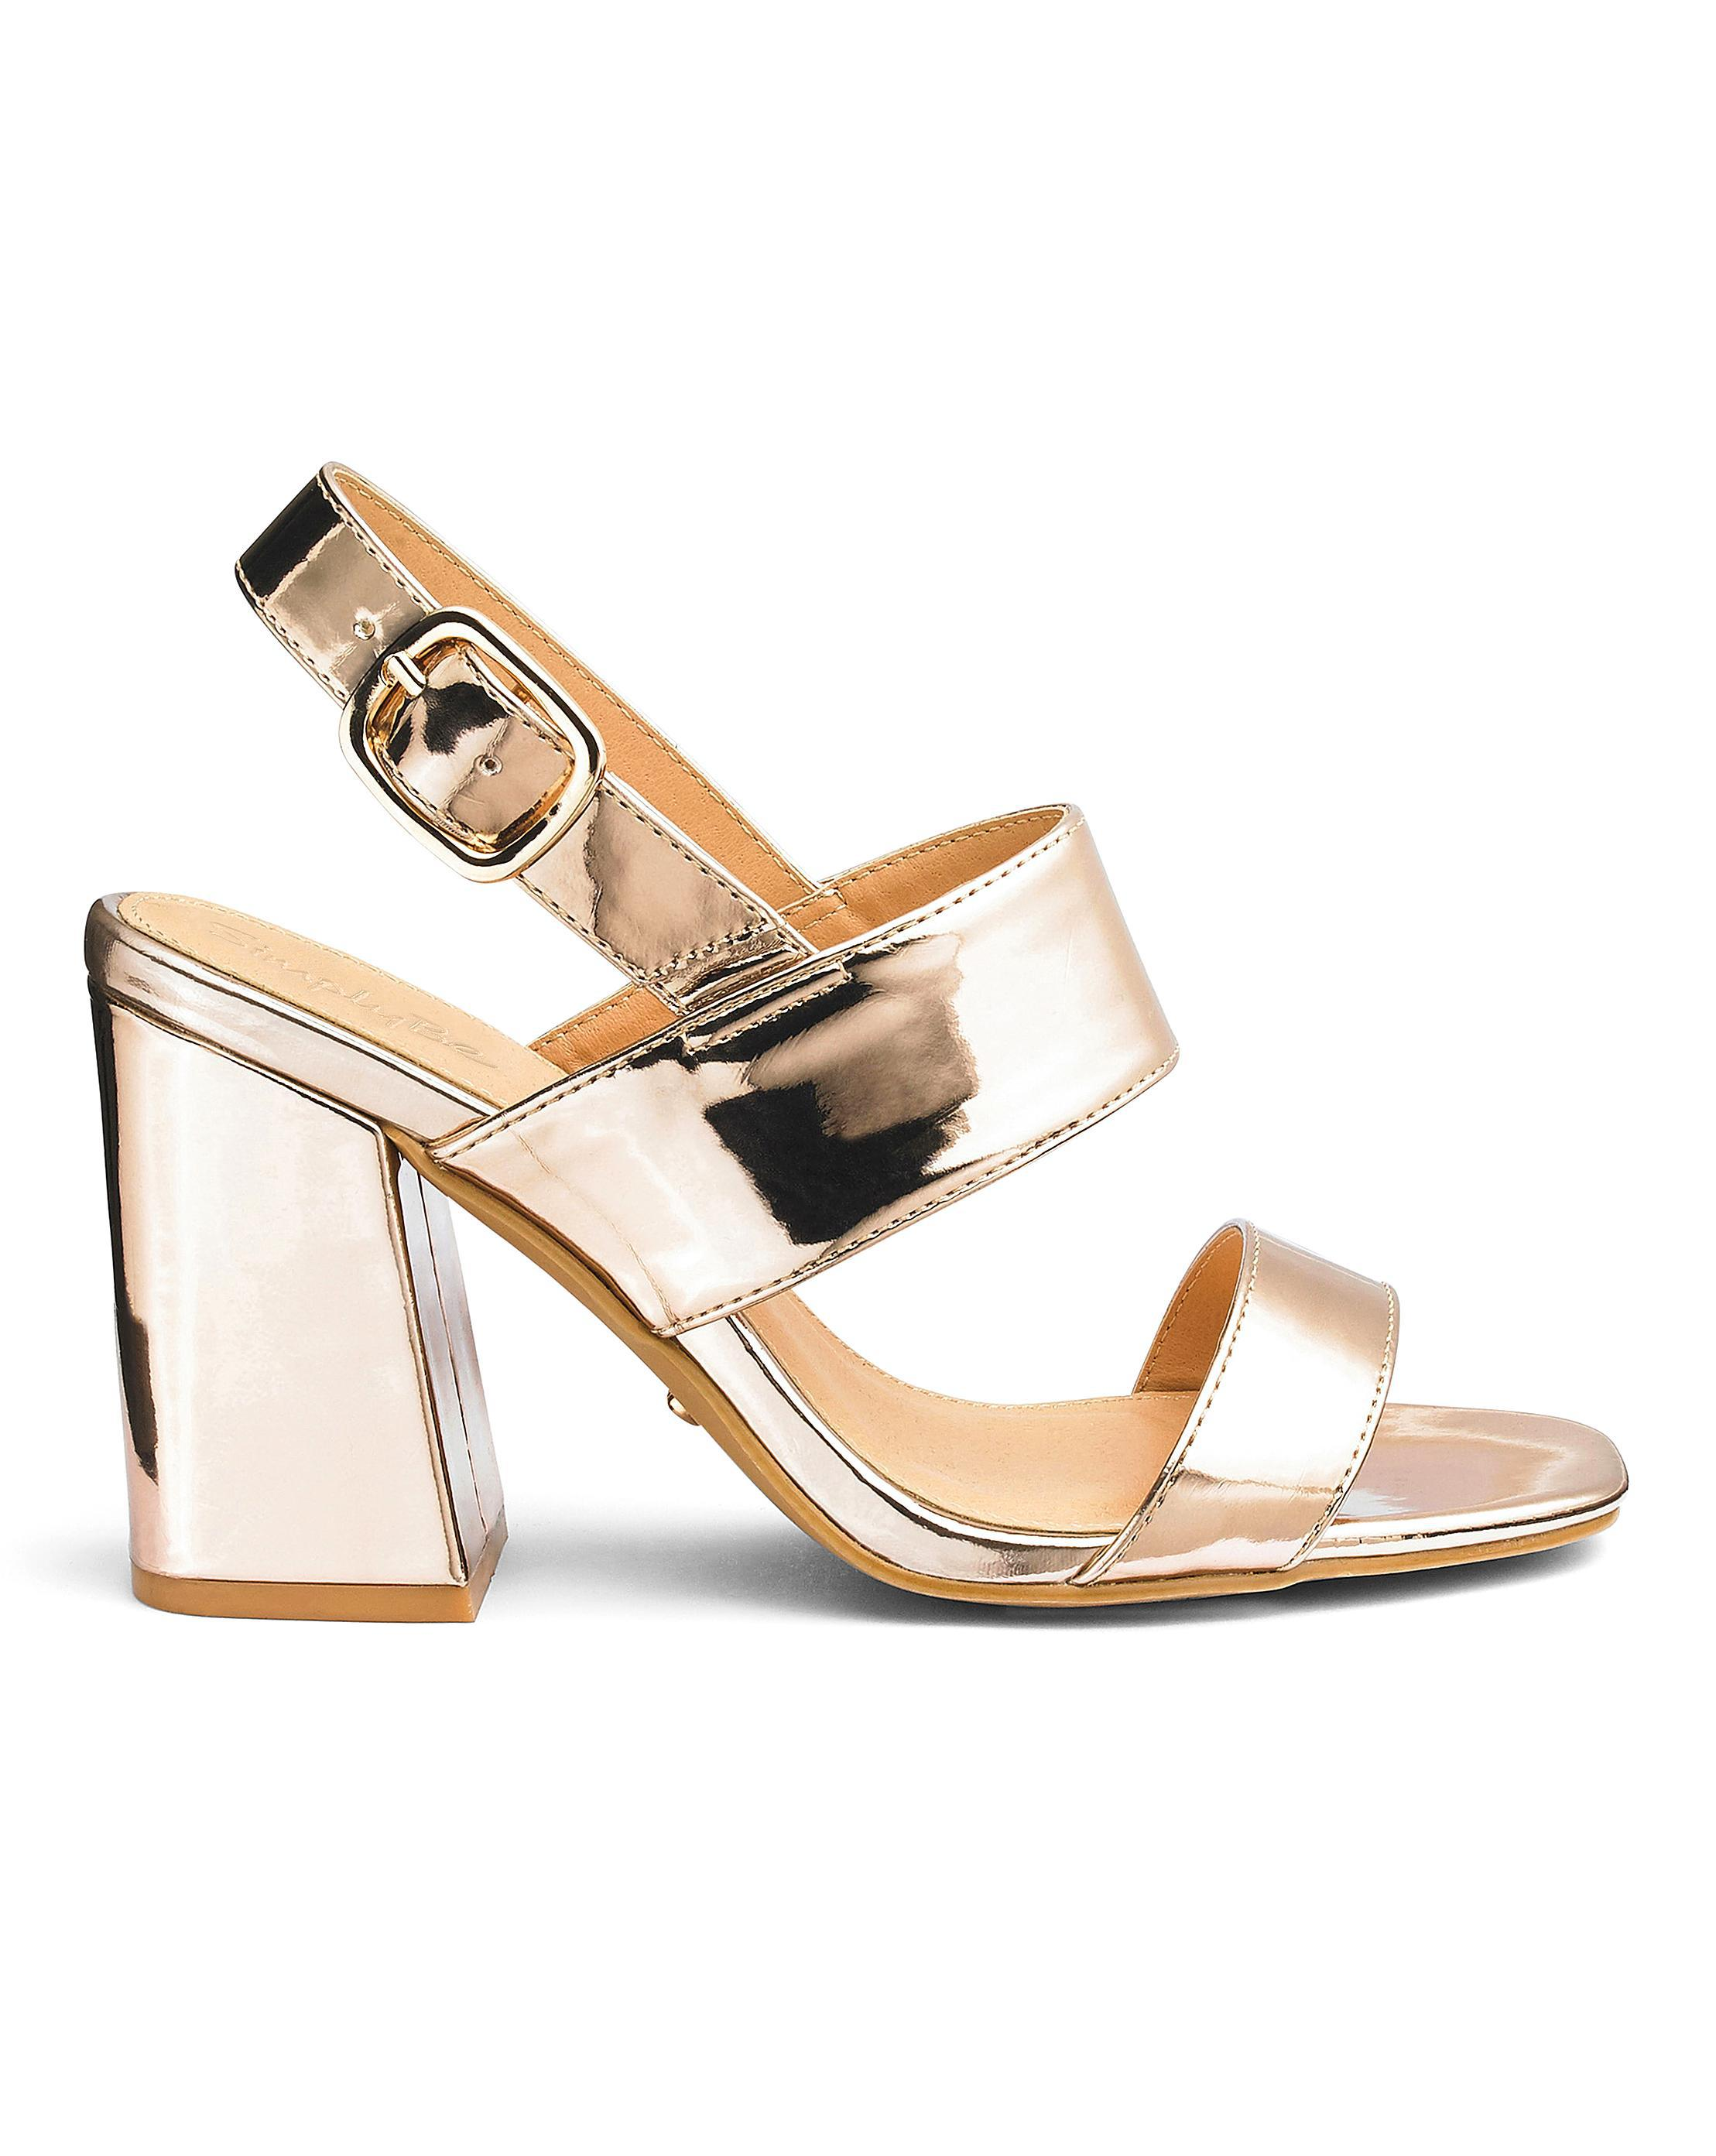 0130c9694f97 Lyst - Simply Be Sole Diva Darcy Sandal Extra Wide Eee Fit in Metallic